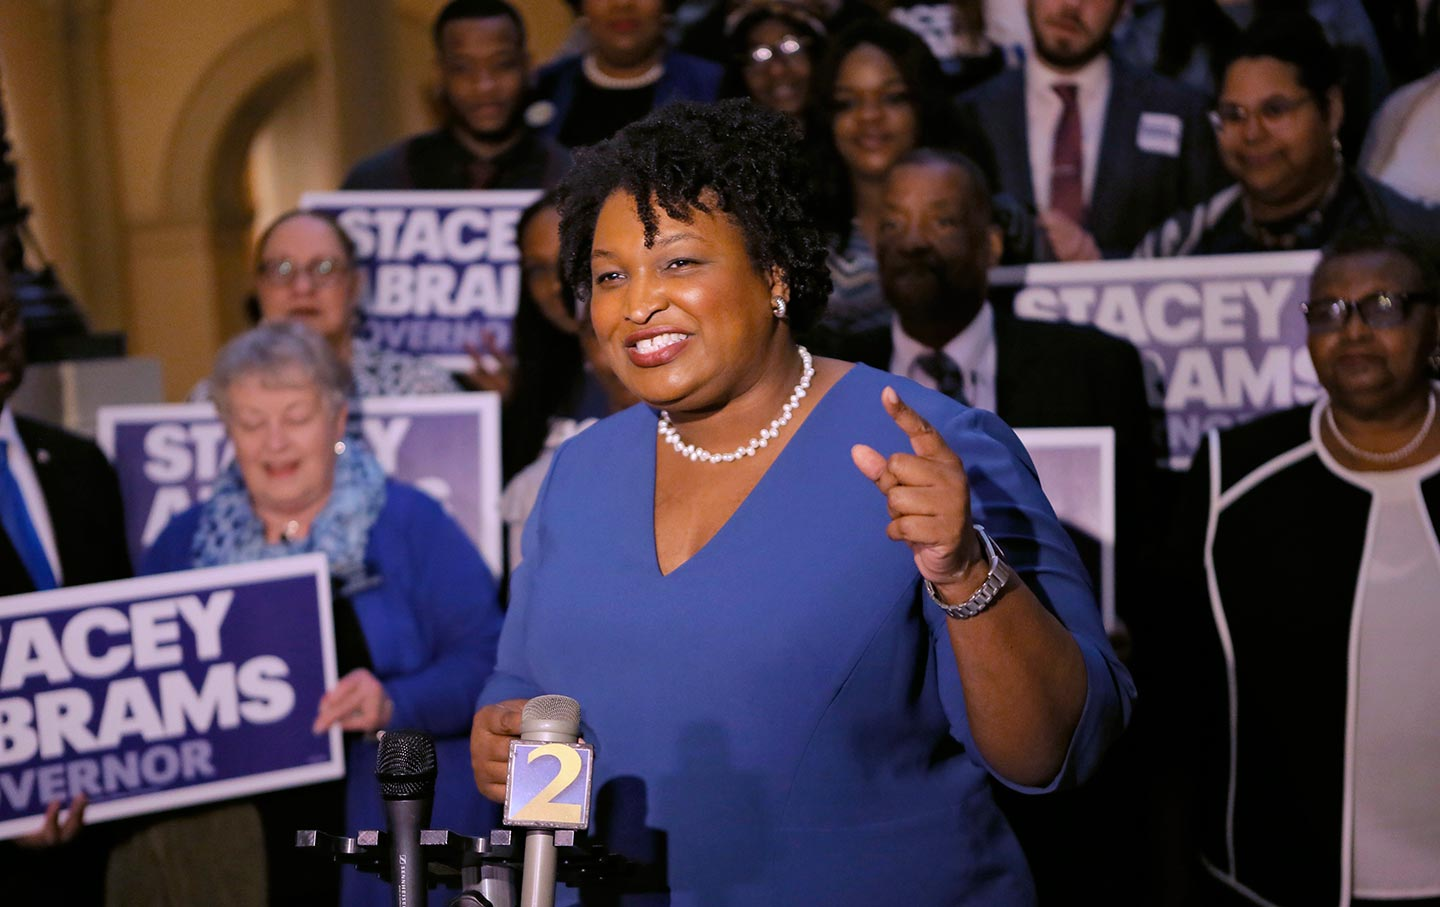 Stacey Abrams Georgia governor's race